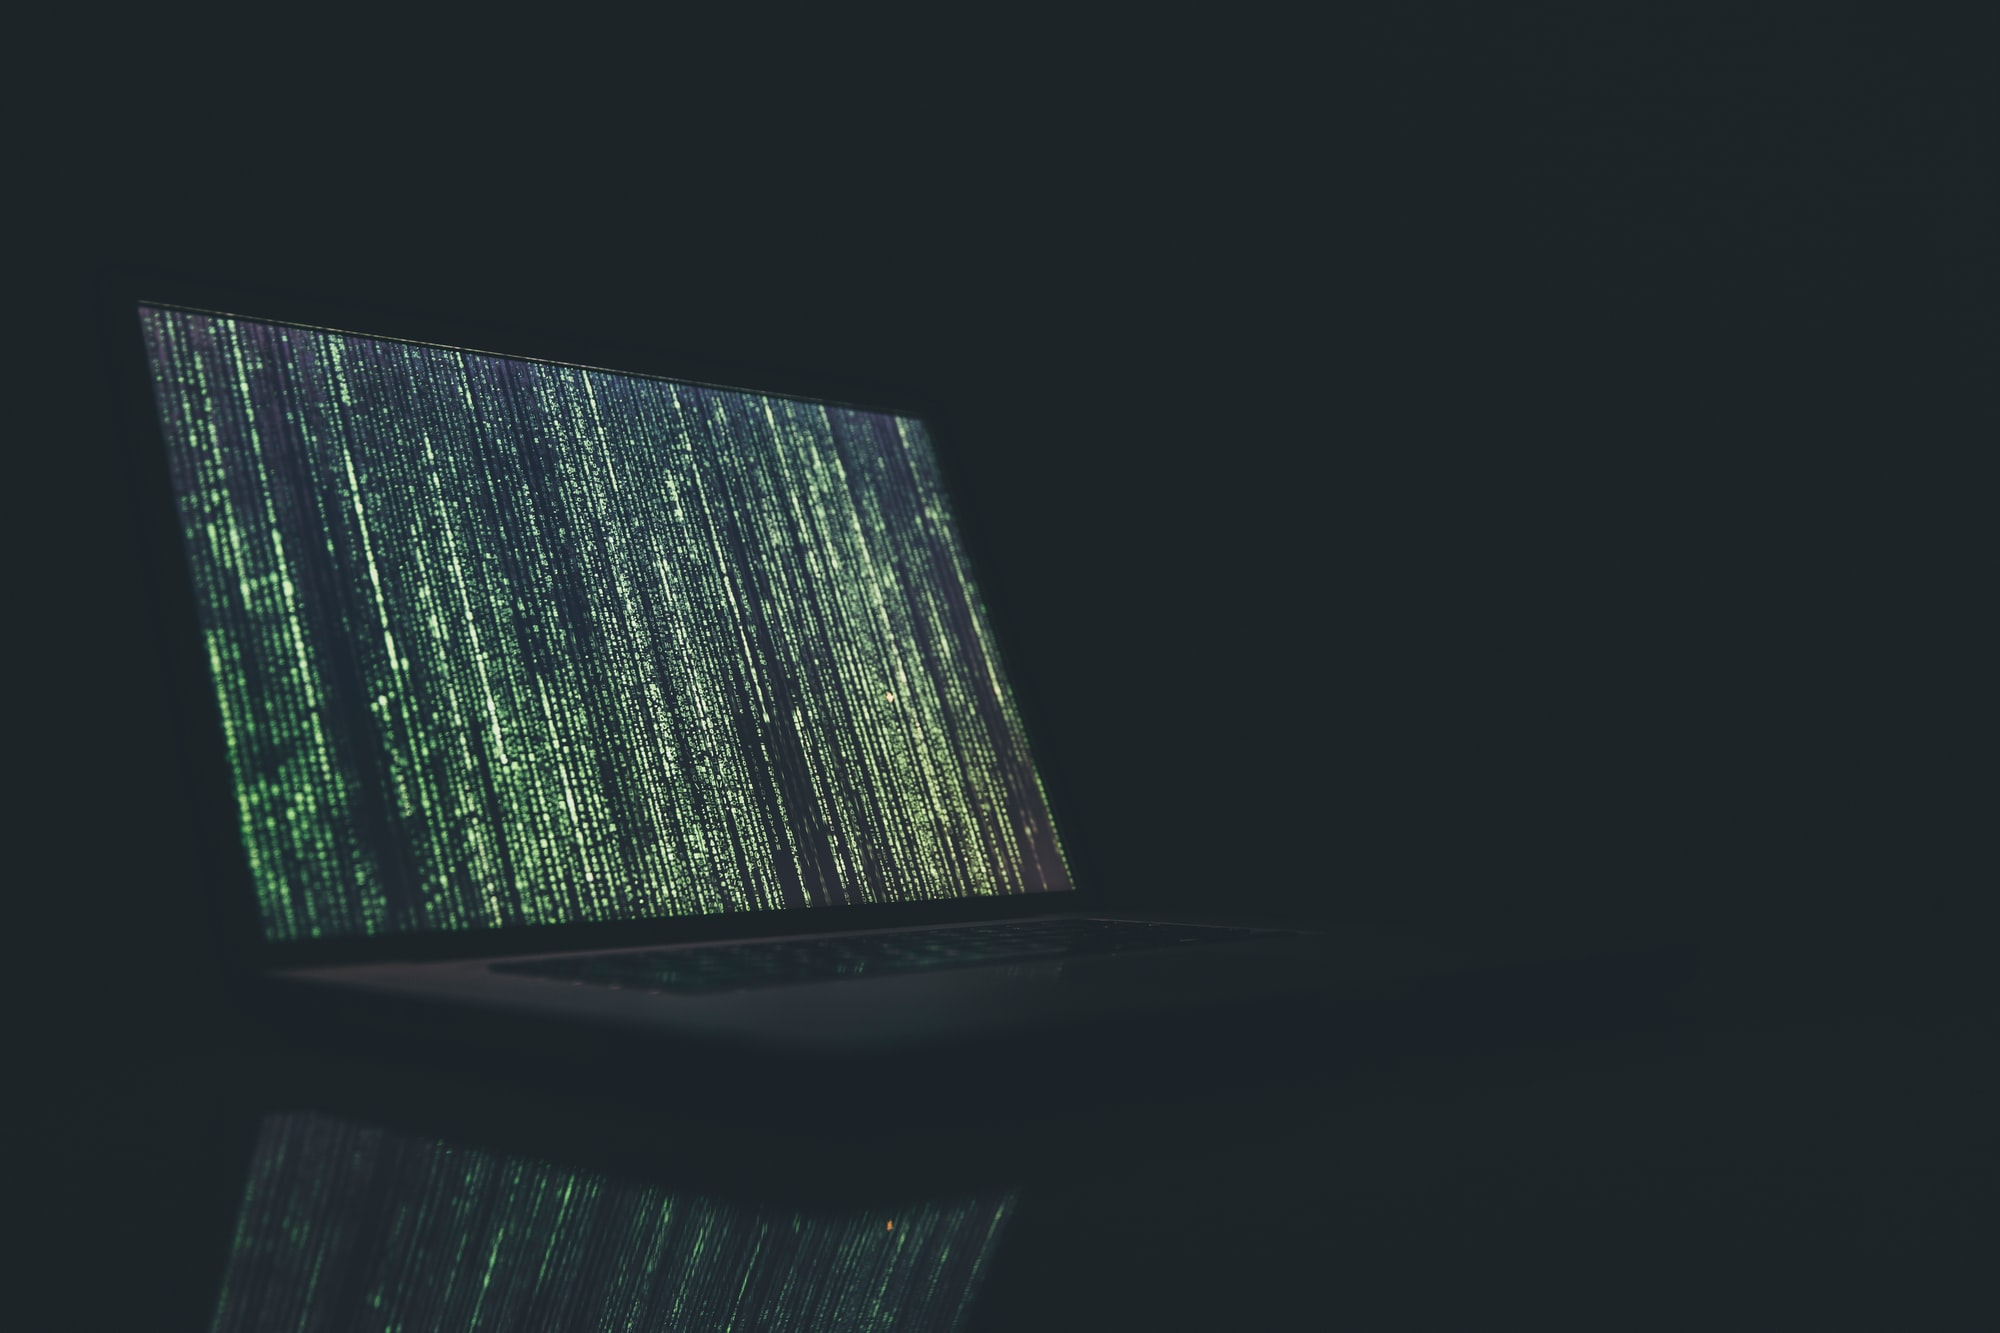 Cybersecurity After Pandemic: What is The Pathway Towards a Safer Cyber Future?